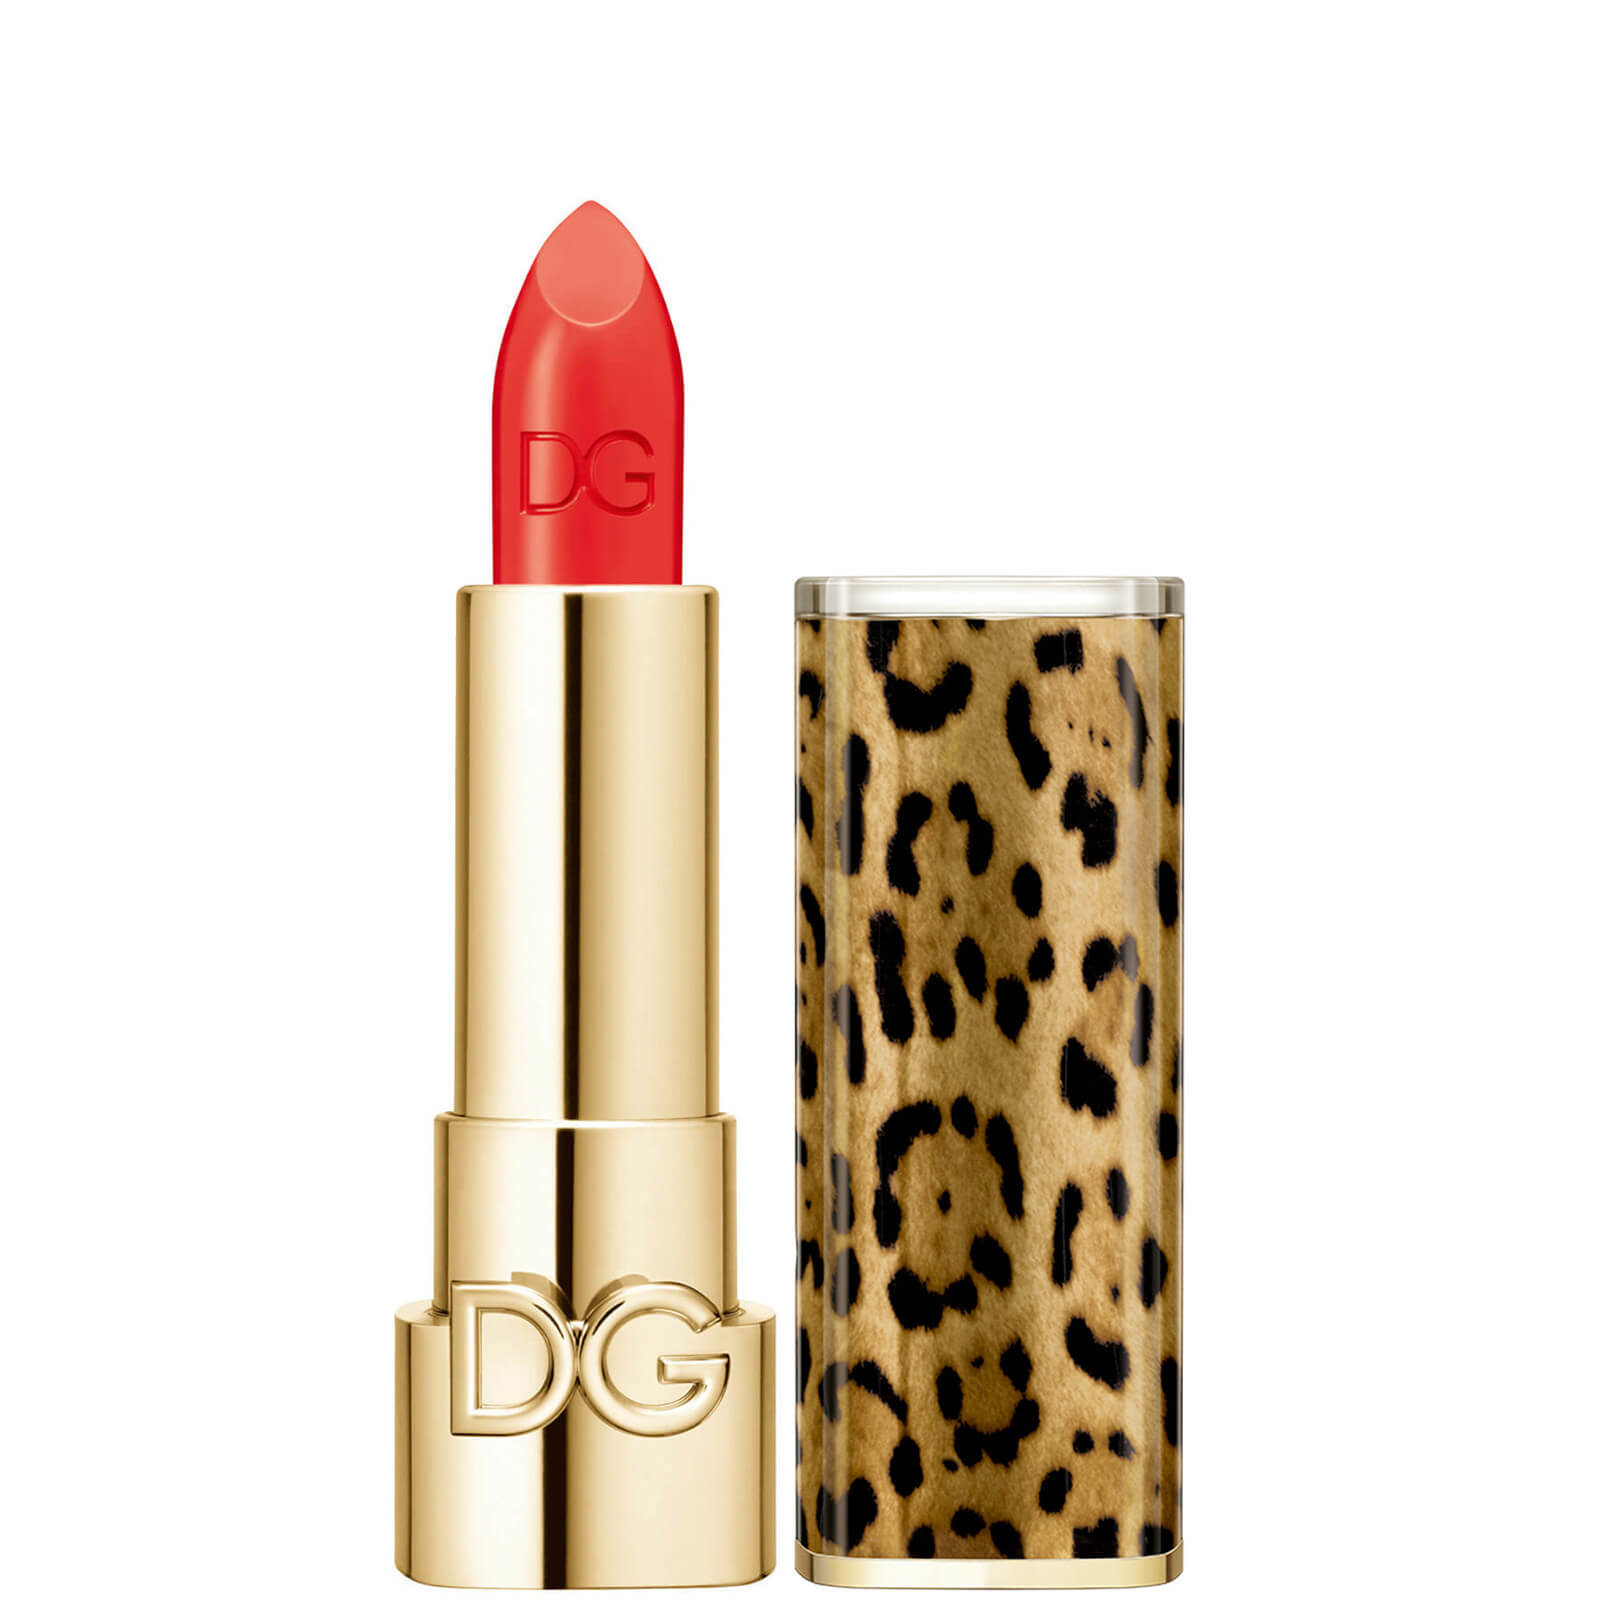 Dolce&Gabbana The Only One Lipstick + Cap (Animalier) (Various Shades) - 510 Orange Vibes